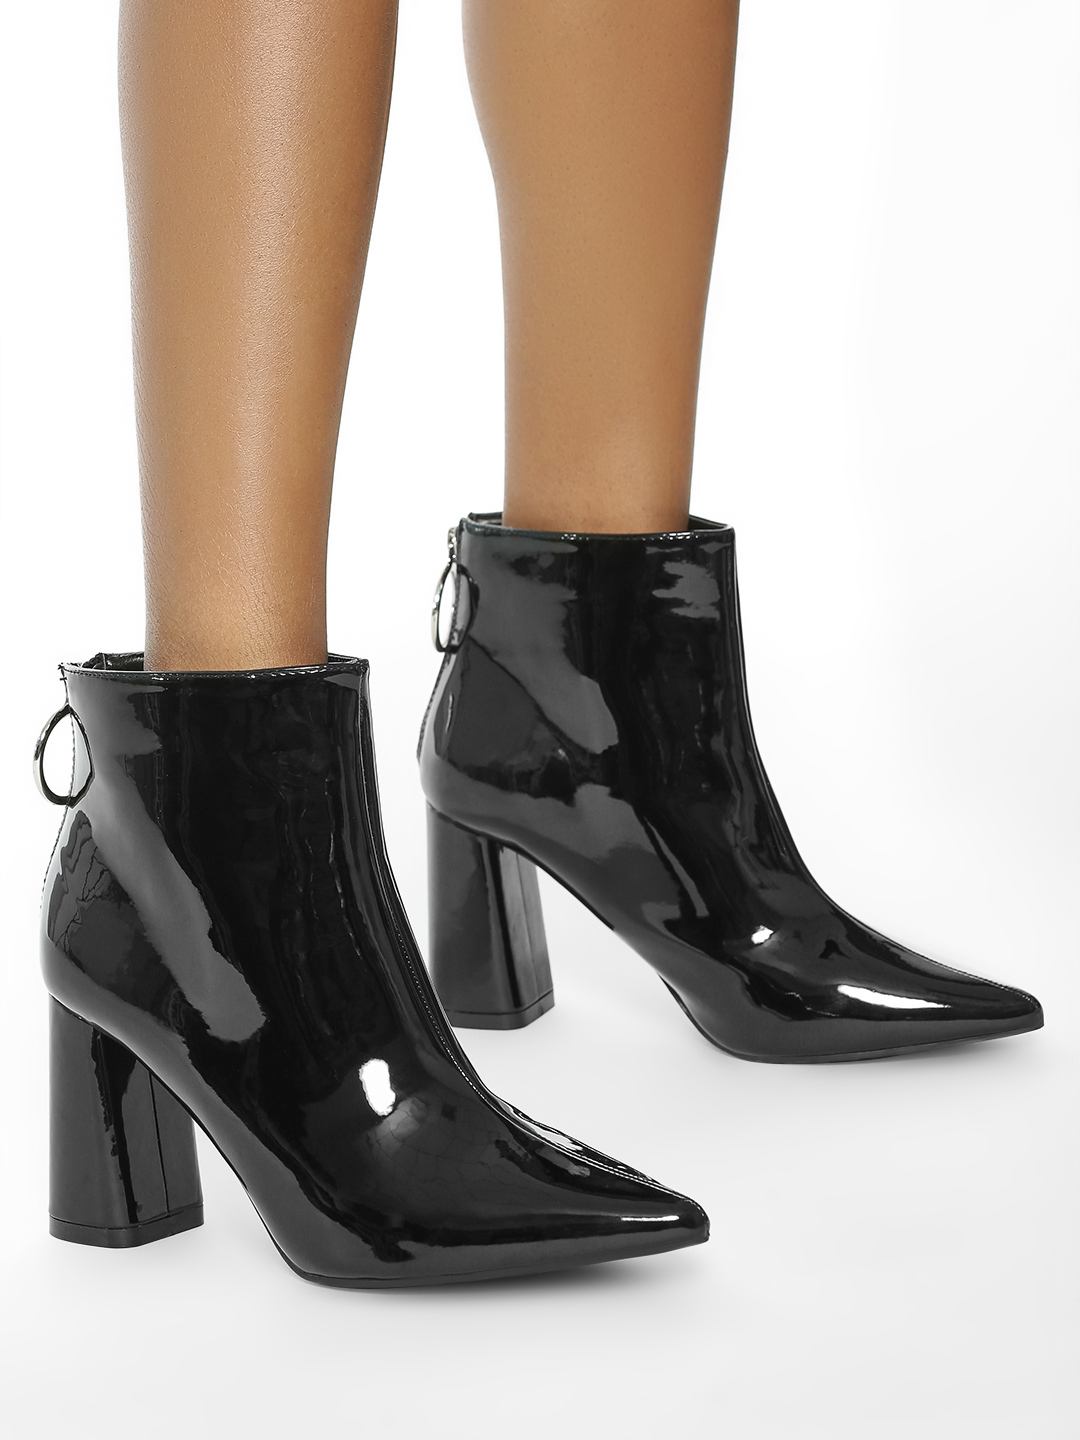 Intoto Black Patent O-Ring Ankle Boots 1